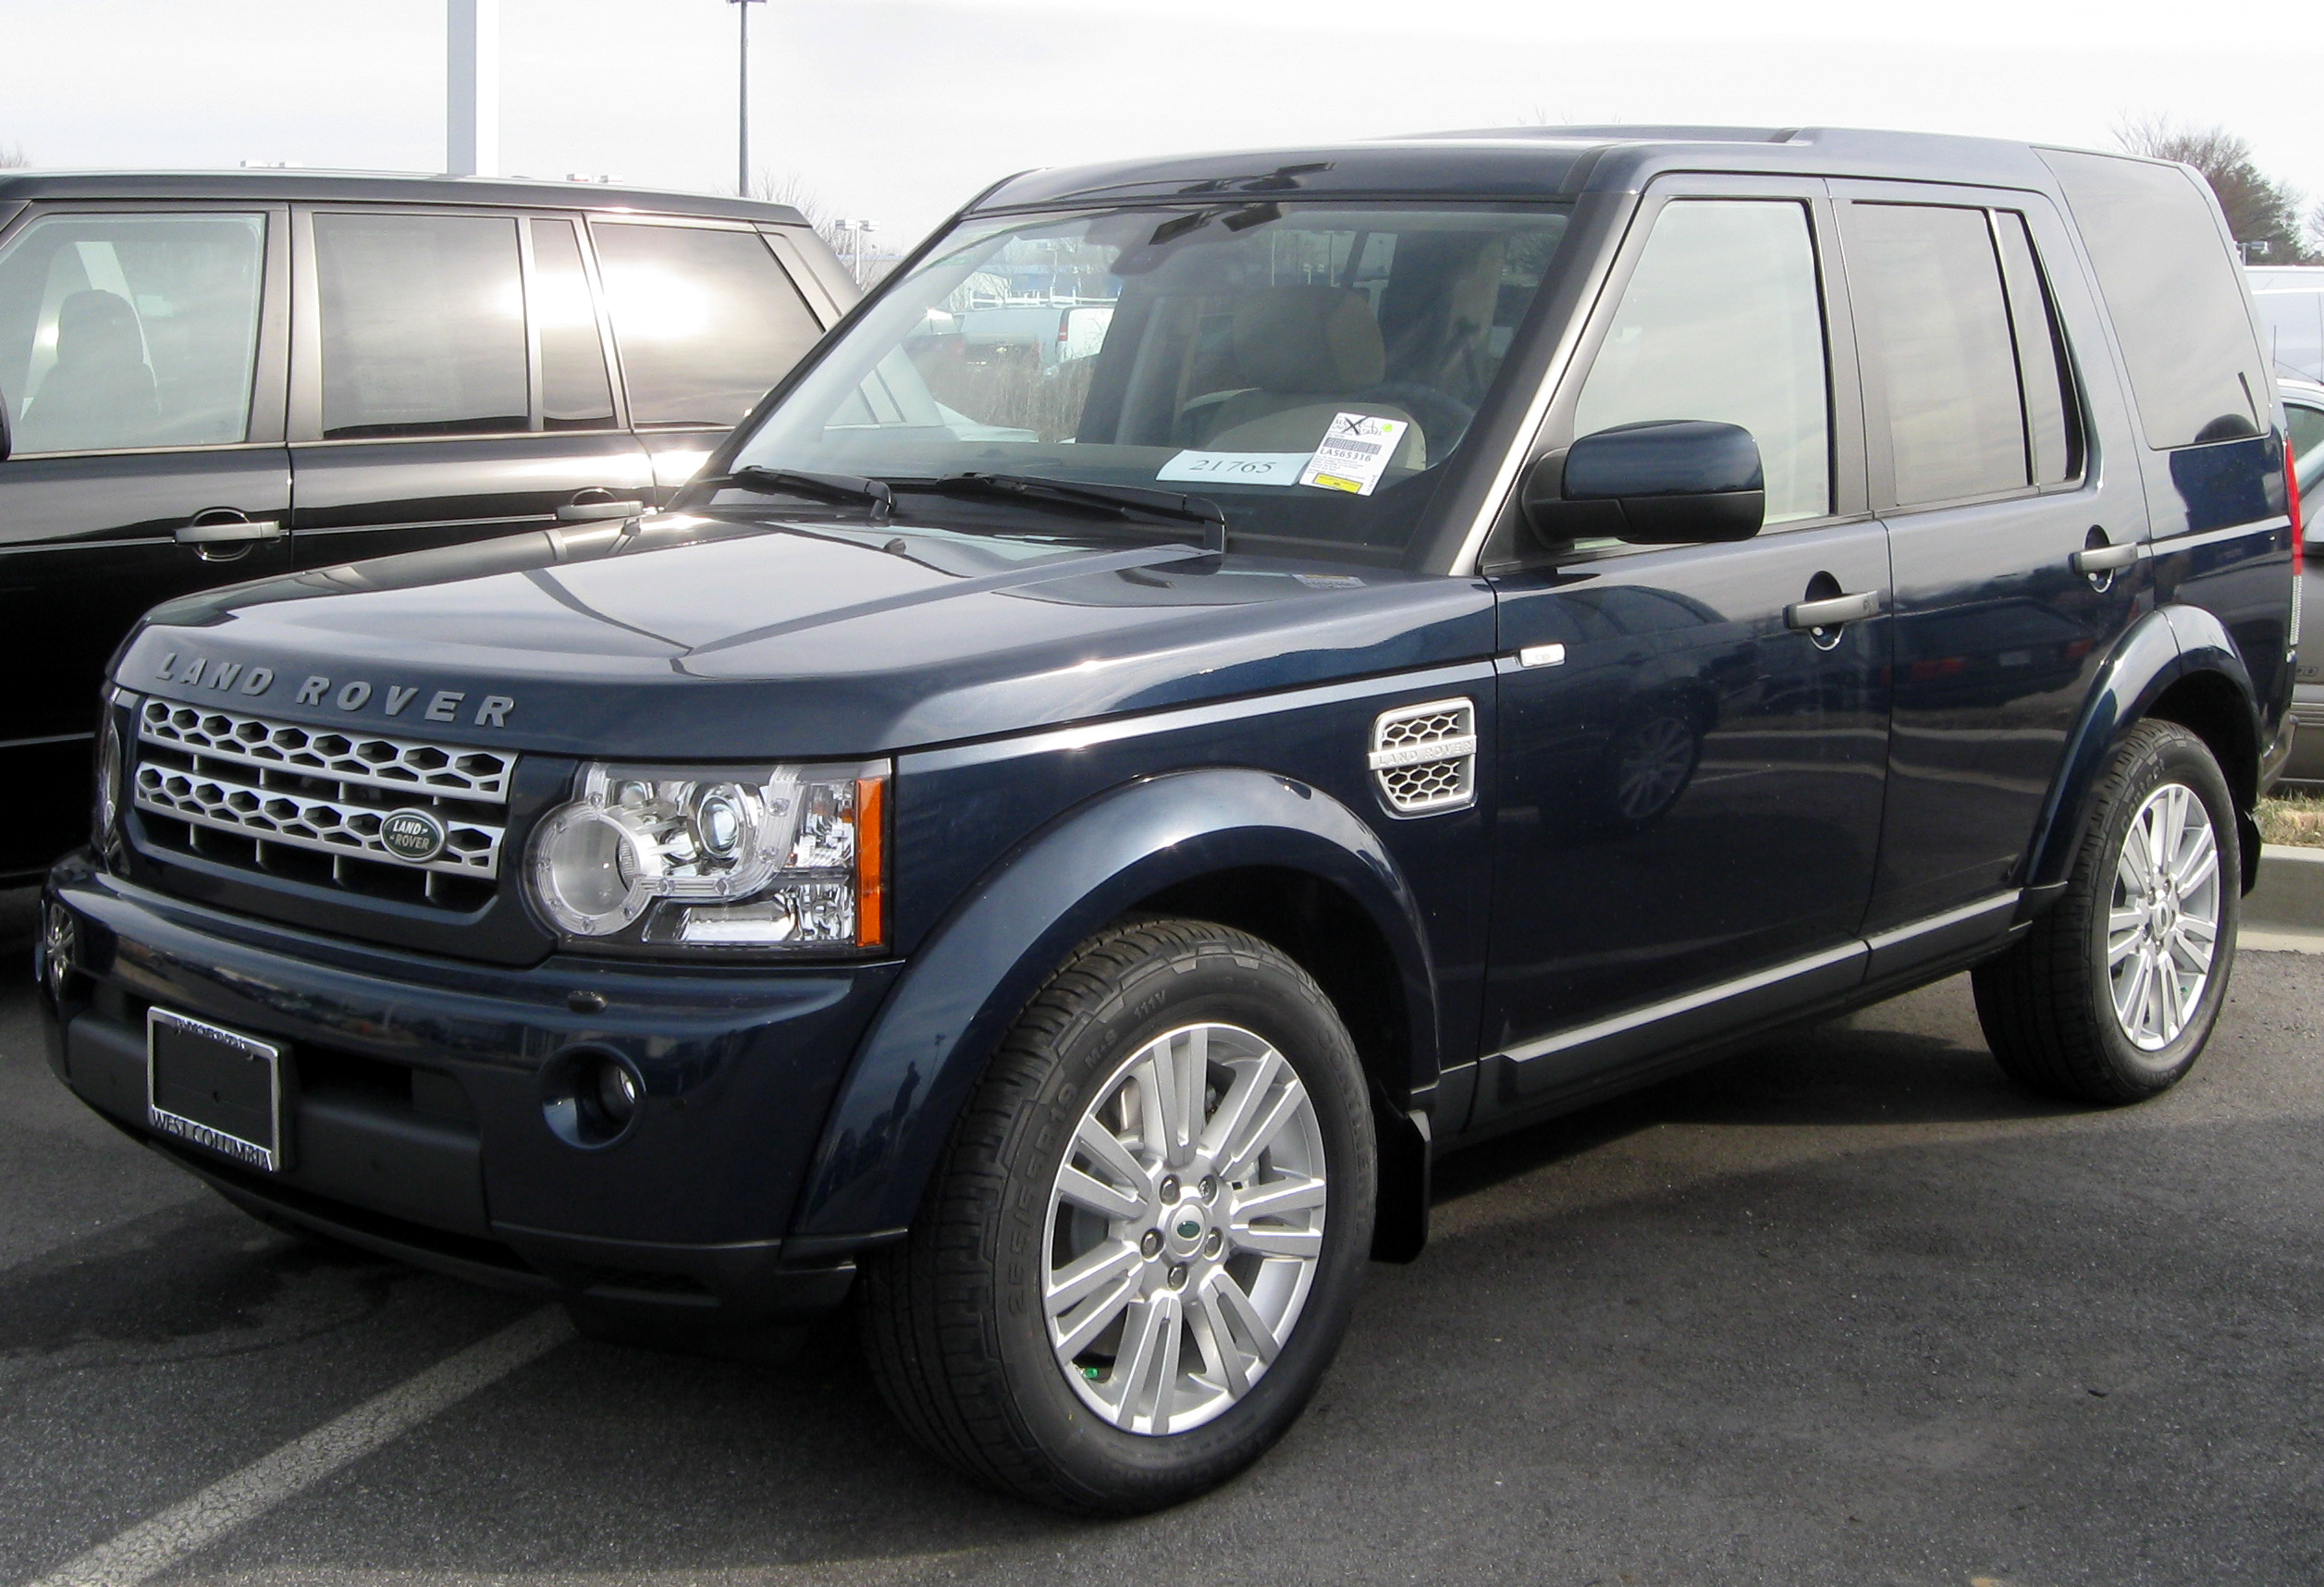 File 2011 Land Rover LR4 12 31 2010 2 Wikimedia mons